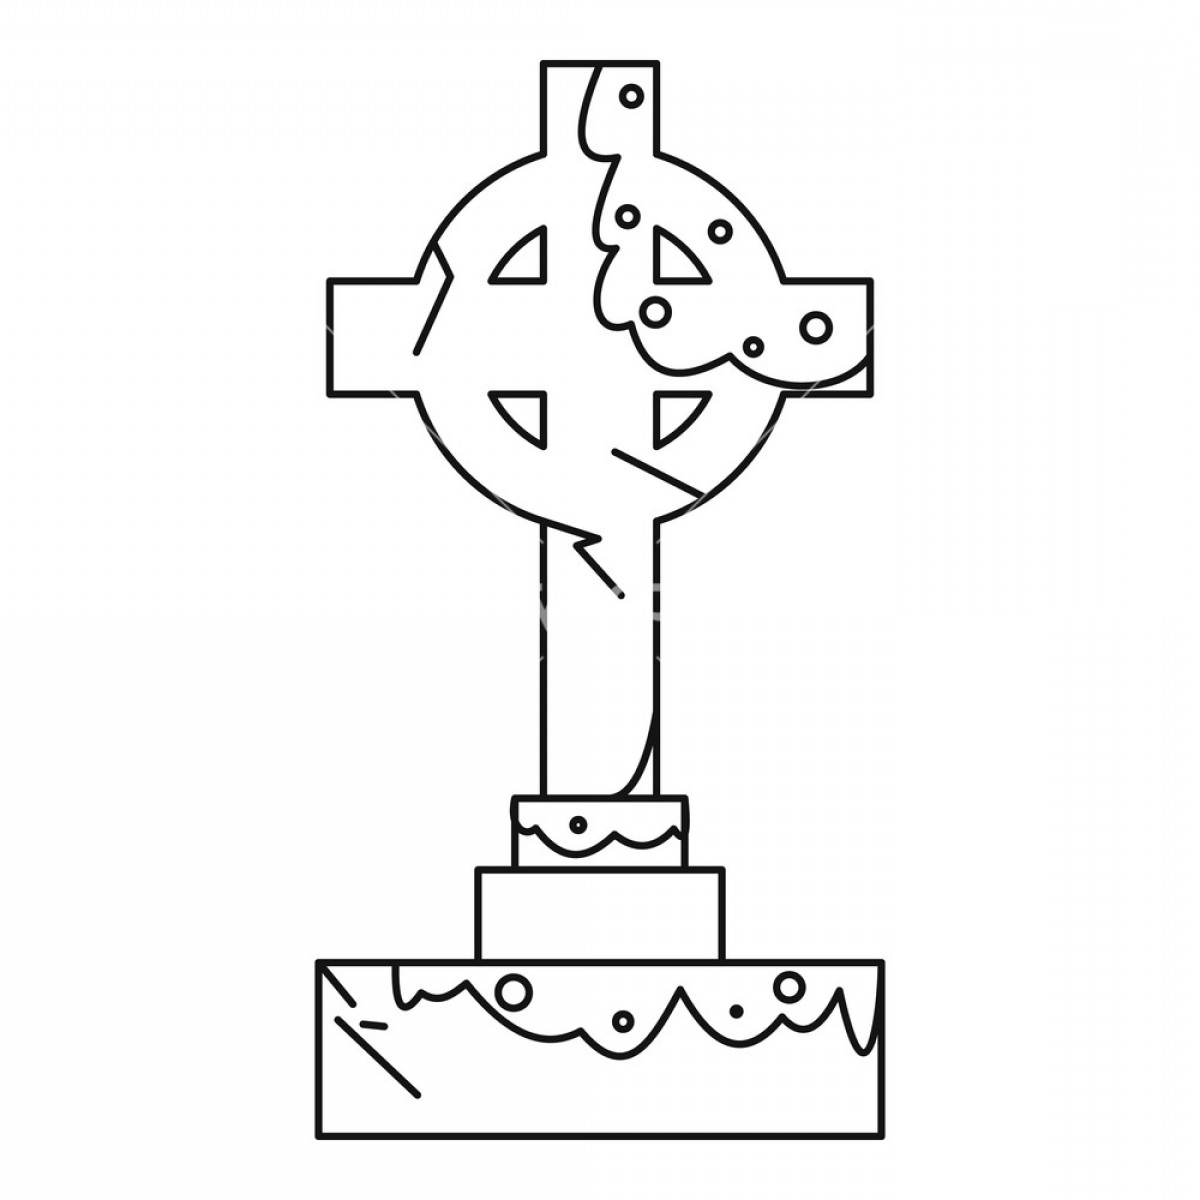 Gravestone Outline Vector: Celtic Cross Gravestone Icon Outline Illustration Of Celtic Cross Gravestone Vector Icon For Web Bxnhtuiqeqjiwjir